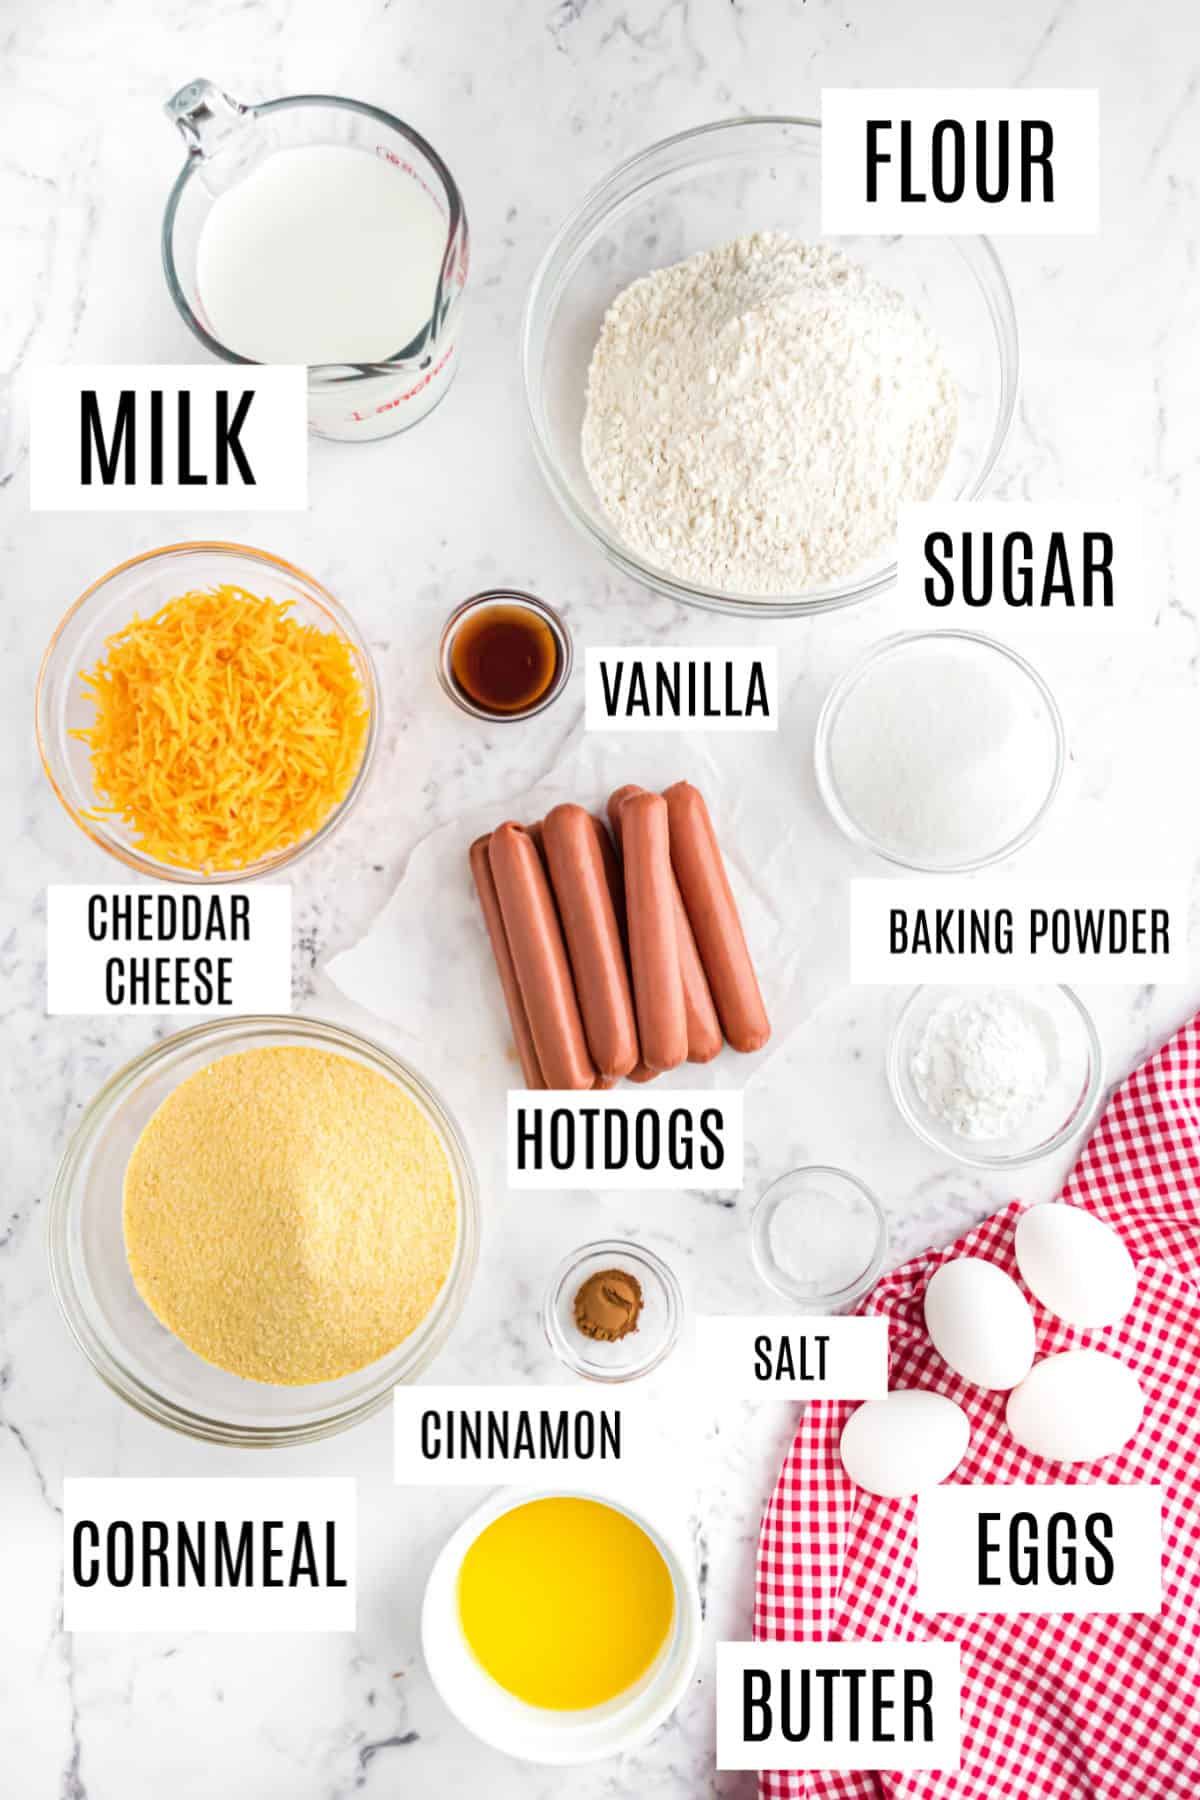 Ingredients needed for homemade corn dog muffins.